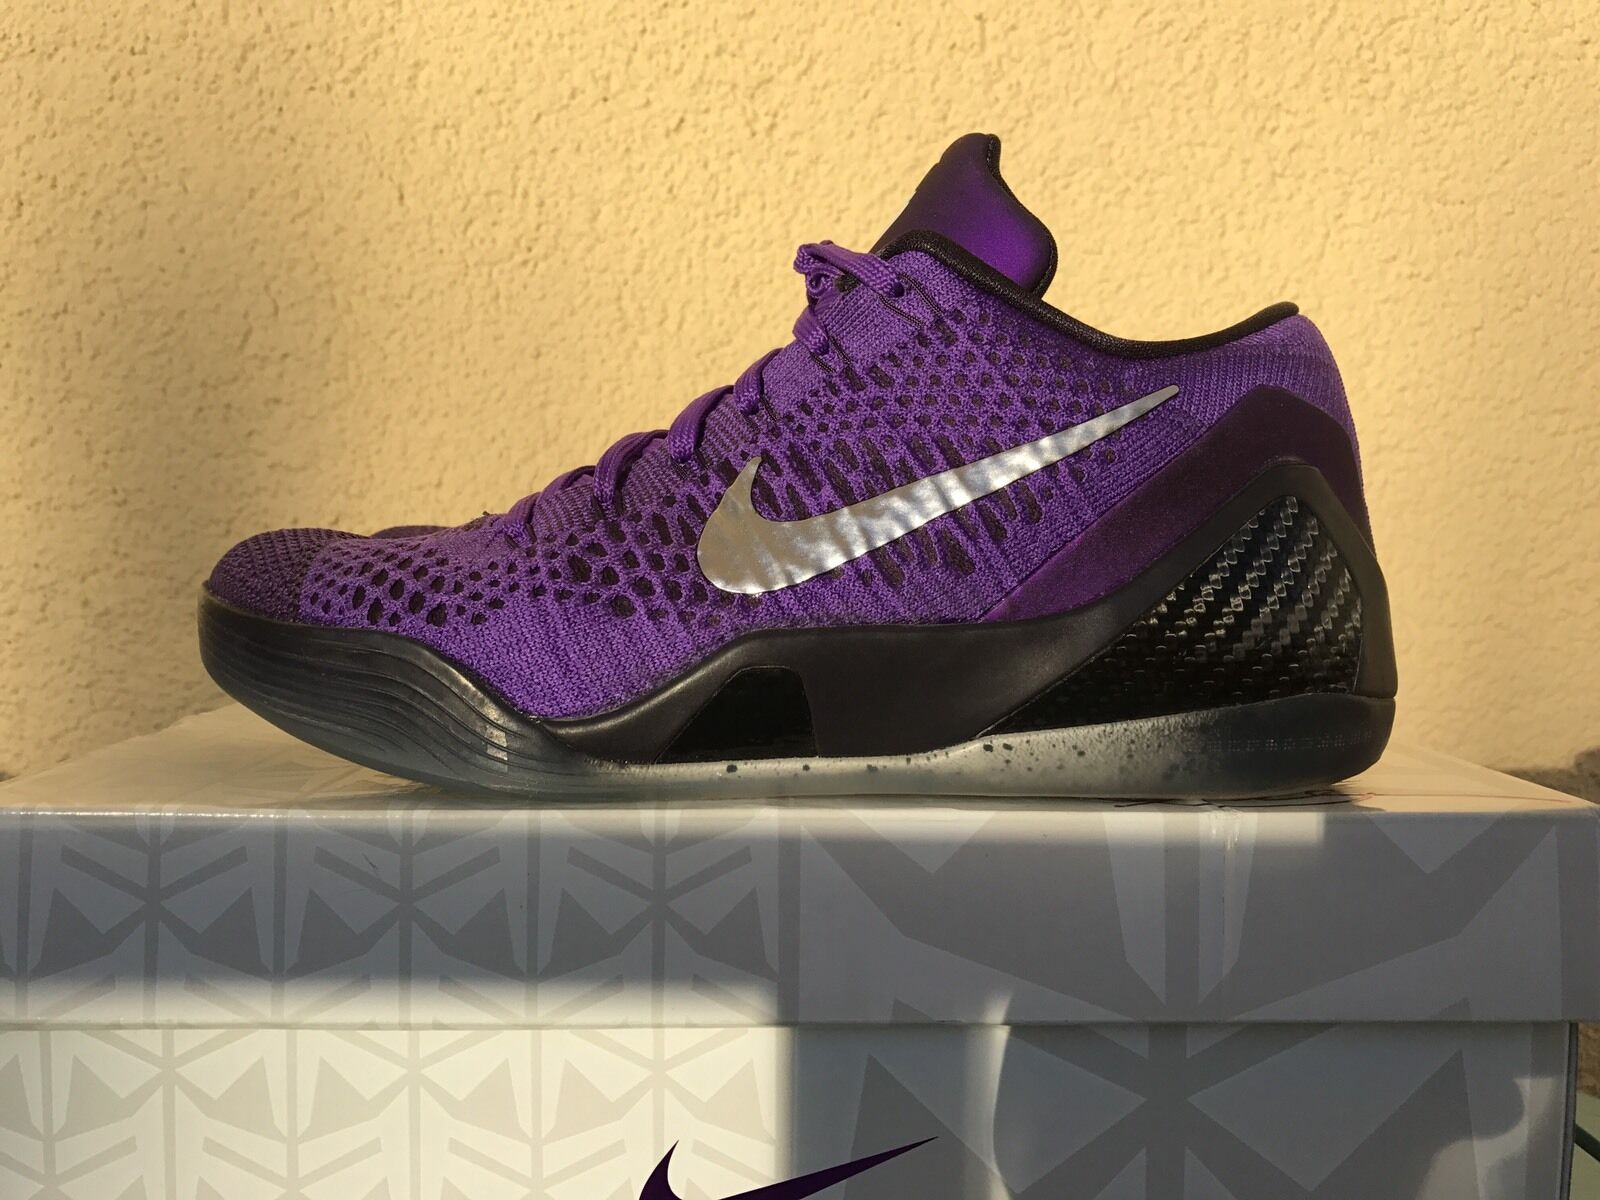 Nike Kobe 9 IX Grape ELITE Moon walk Hyper Grape IX EU42 US8,5 Lila *protro mamba ftb htm 604ed0